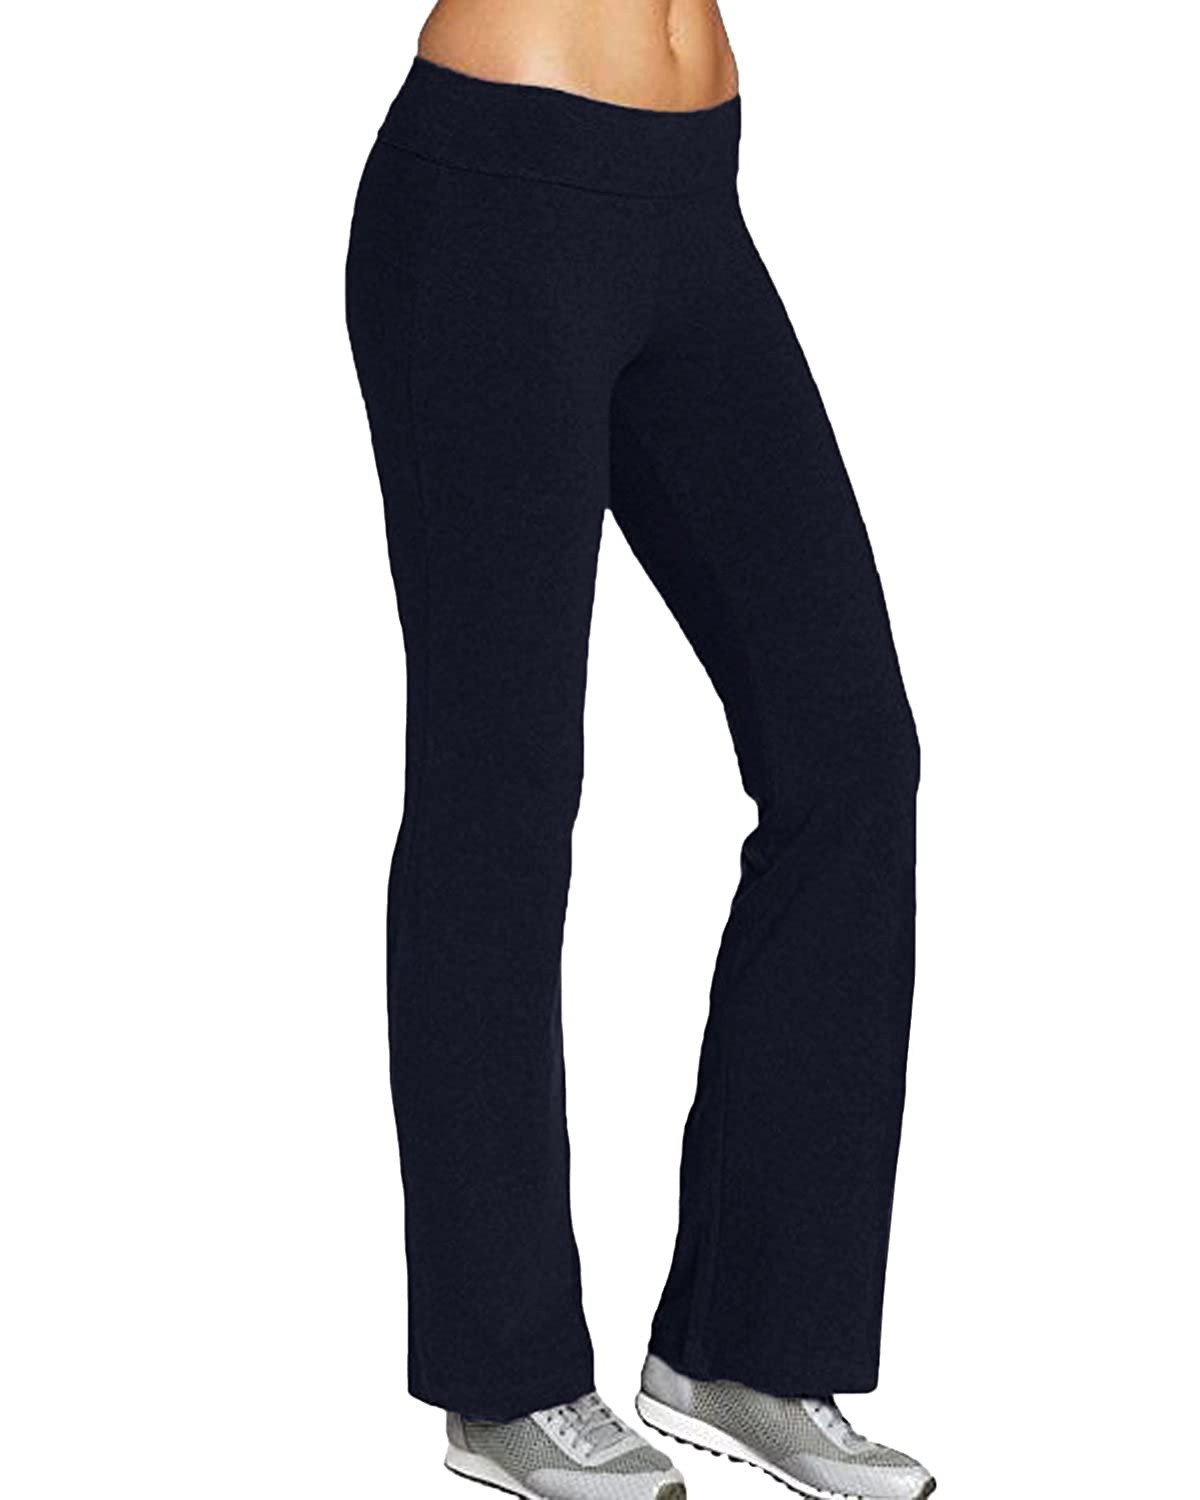 footwear discover latest trends shop for luxury Kidsform Women Stretchy Tracksuit Jogging Bottoms, Boot Cut Yoga Pants,  Ladies Pilates Pants, Workout Gym Running Joggers Bootleg Trousers for  Ladies